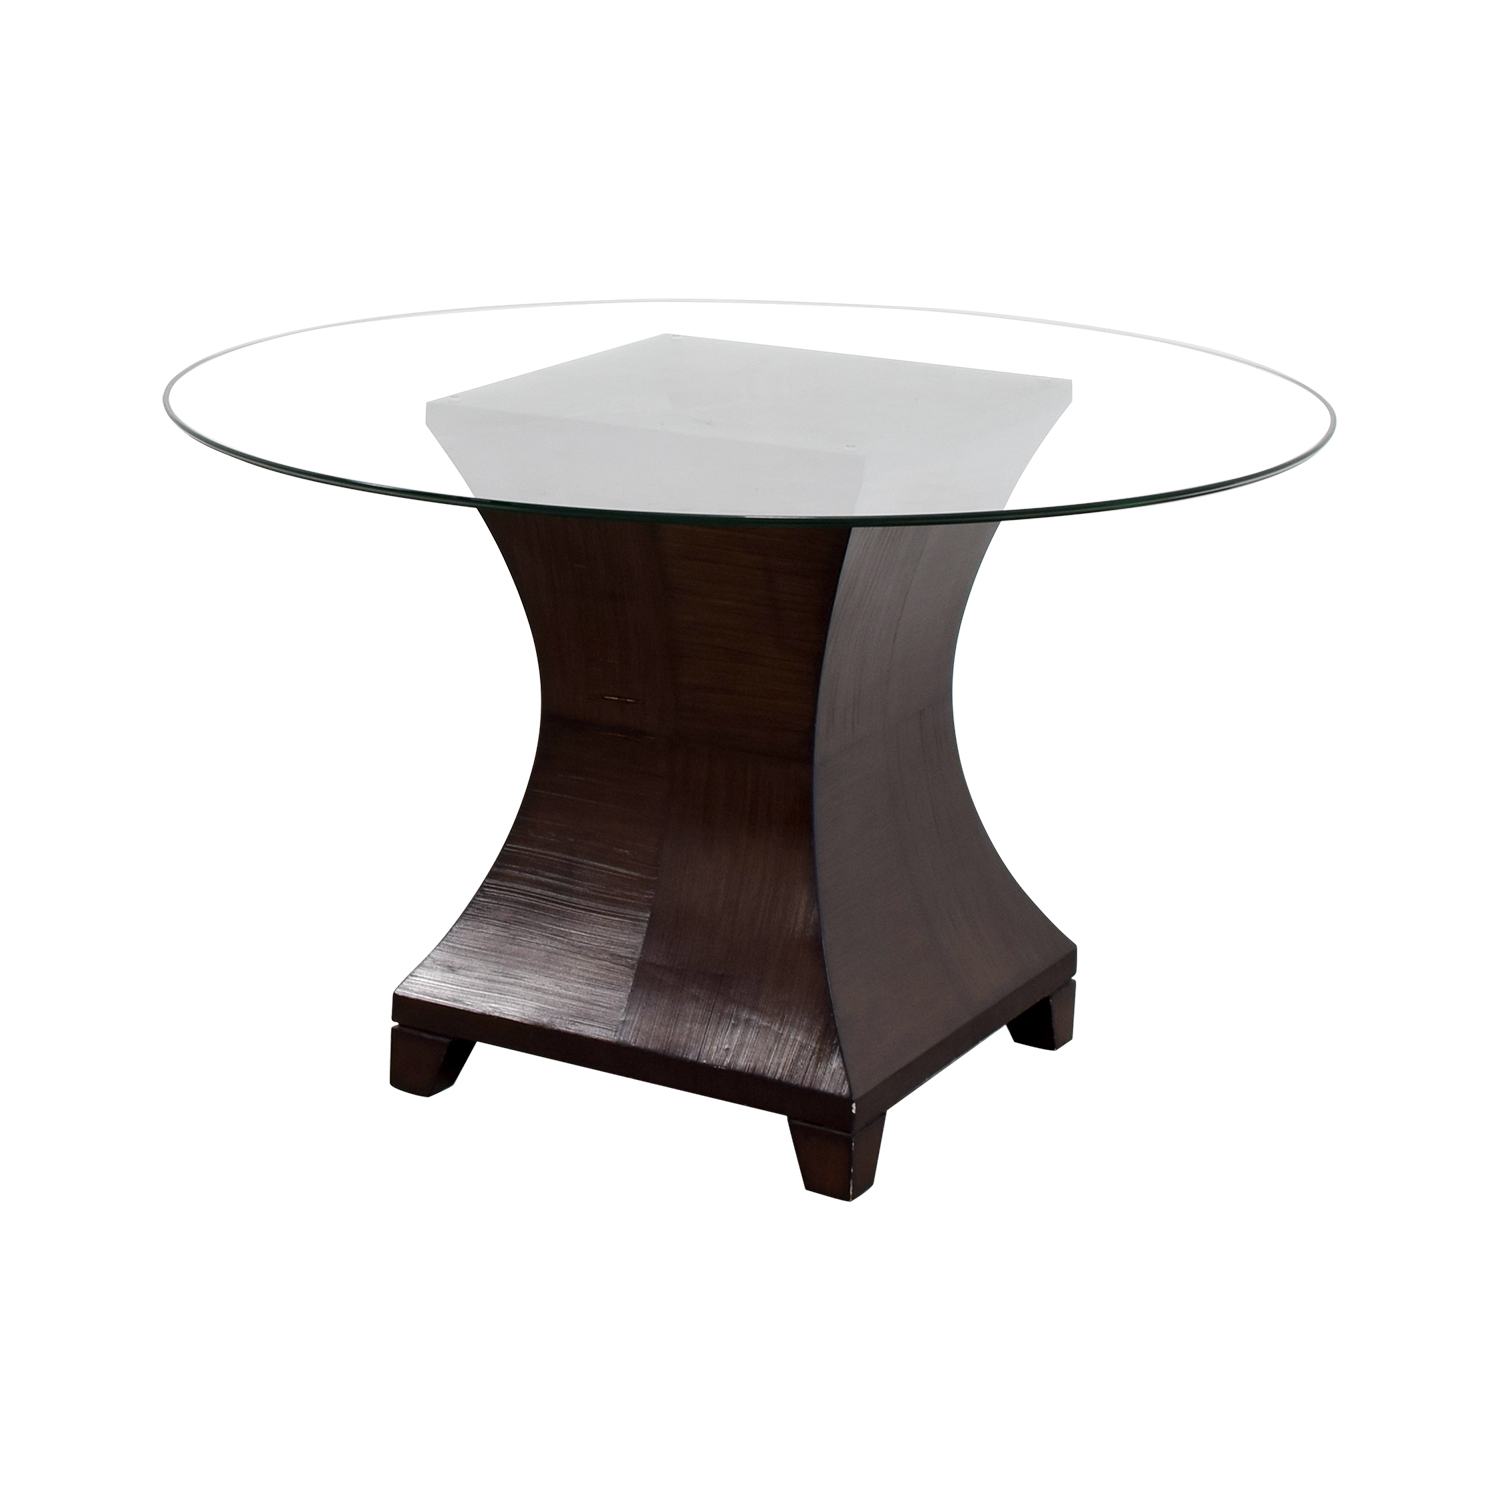 90 off round glass top dining table tables. Black Bedroom Furniture Sets. Home Design Ideas